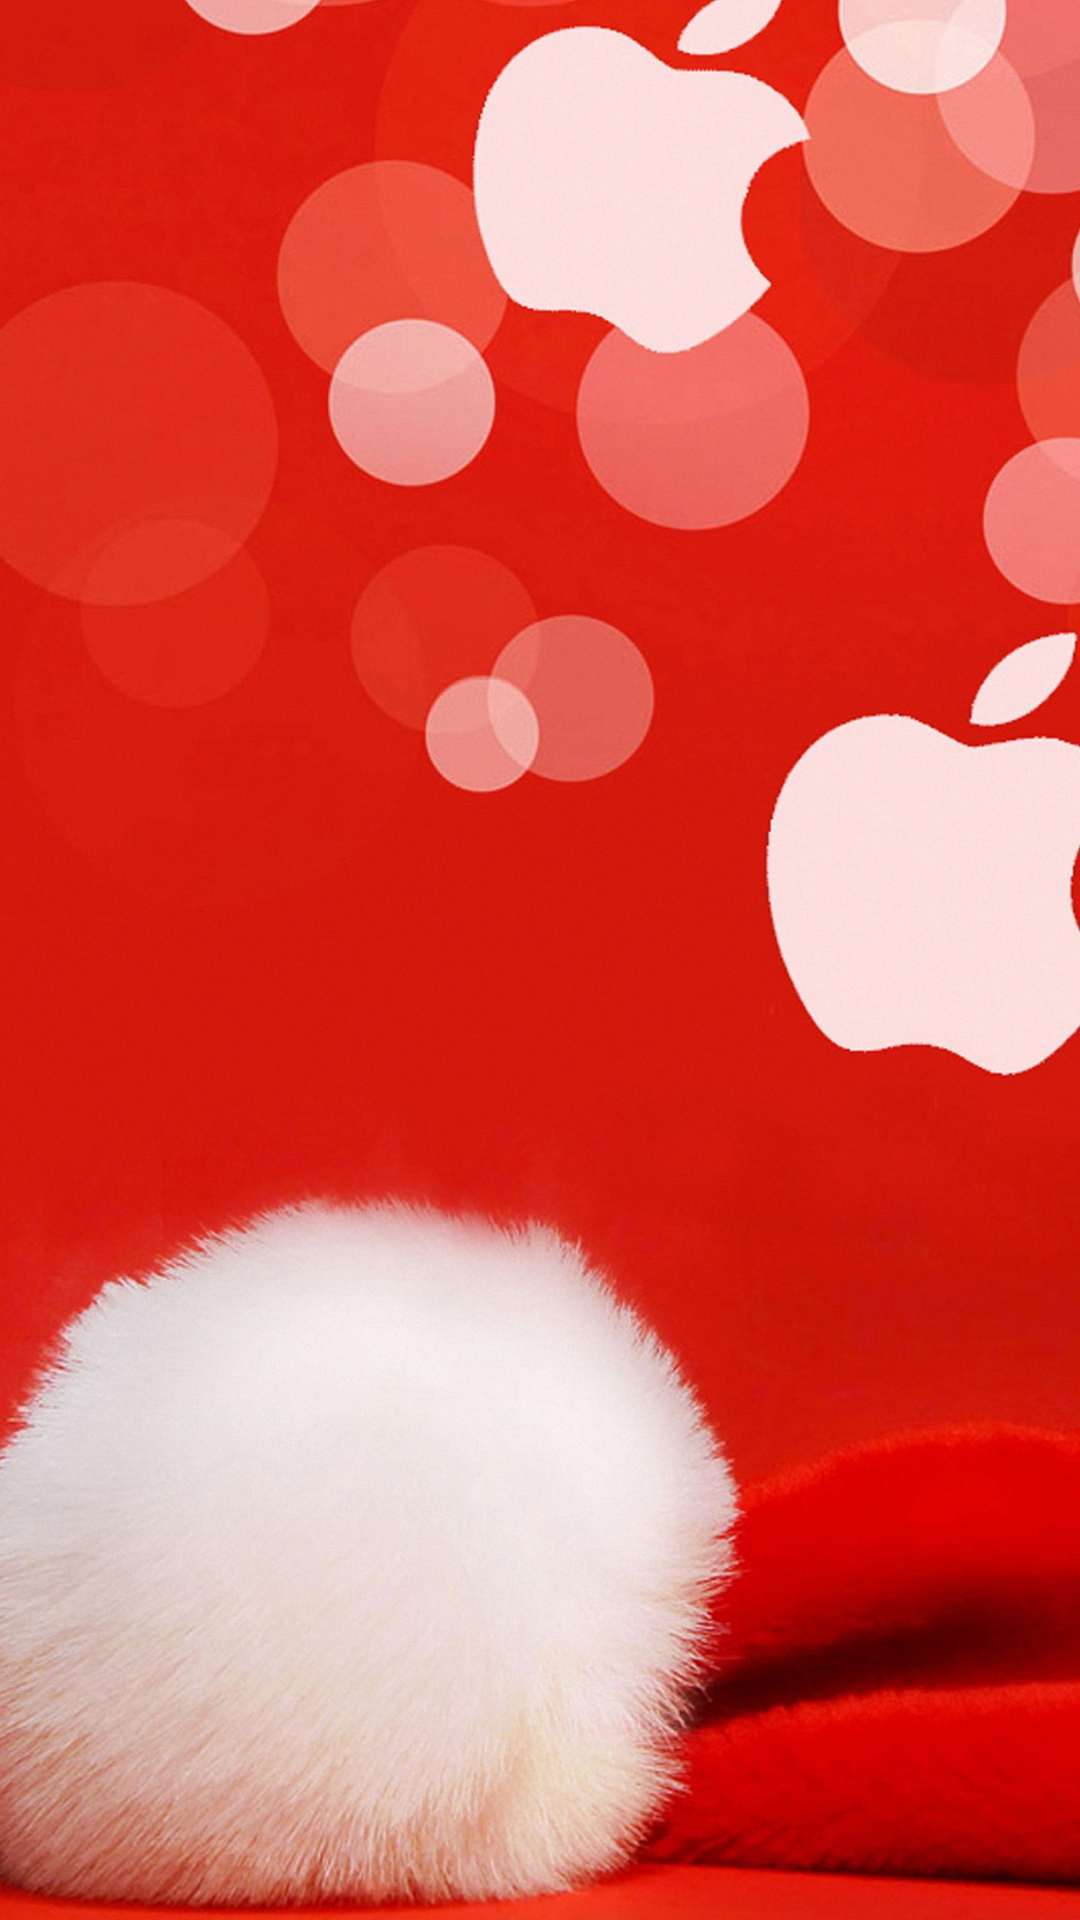 Free Download Apple Christmas Iphone 6s Wallpapers Hd